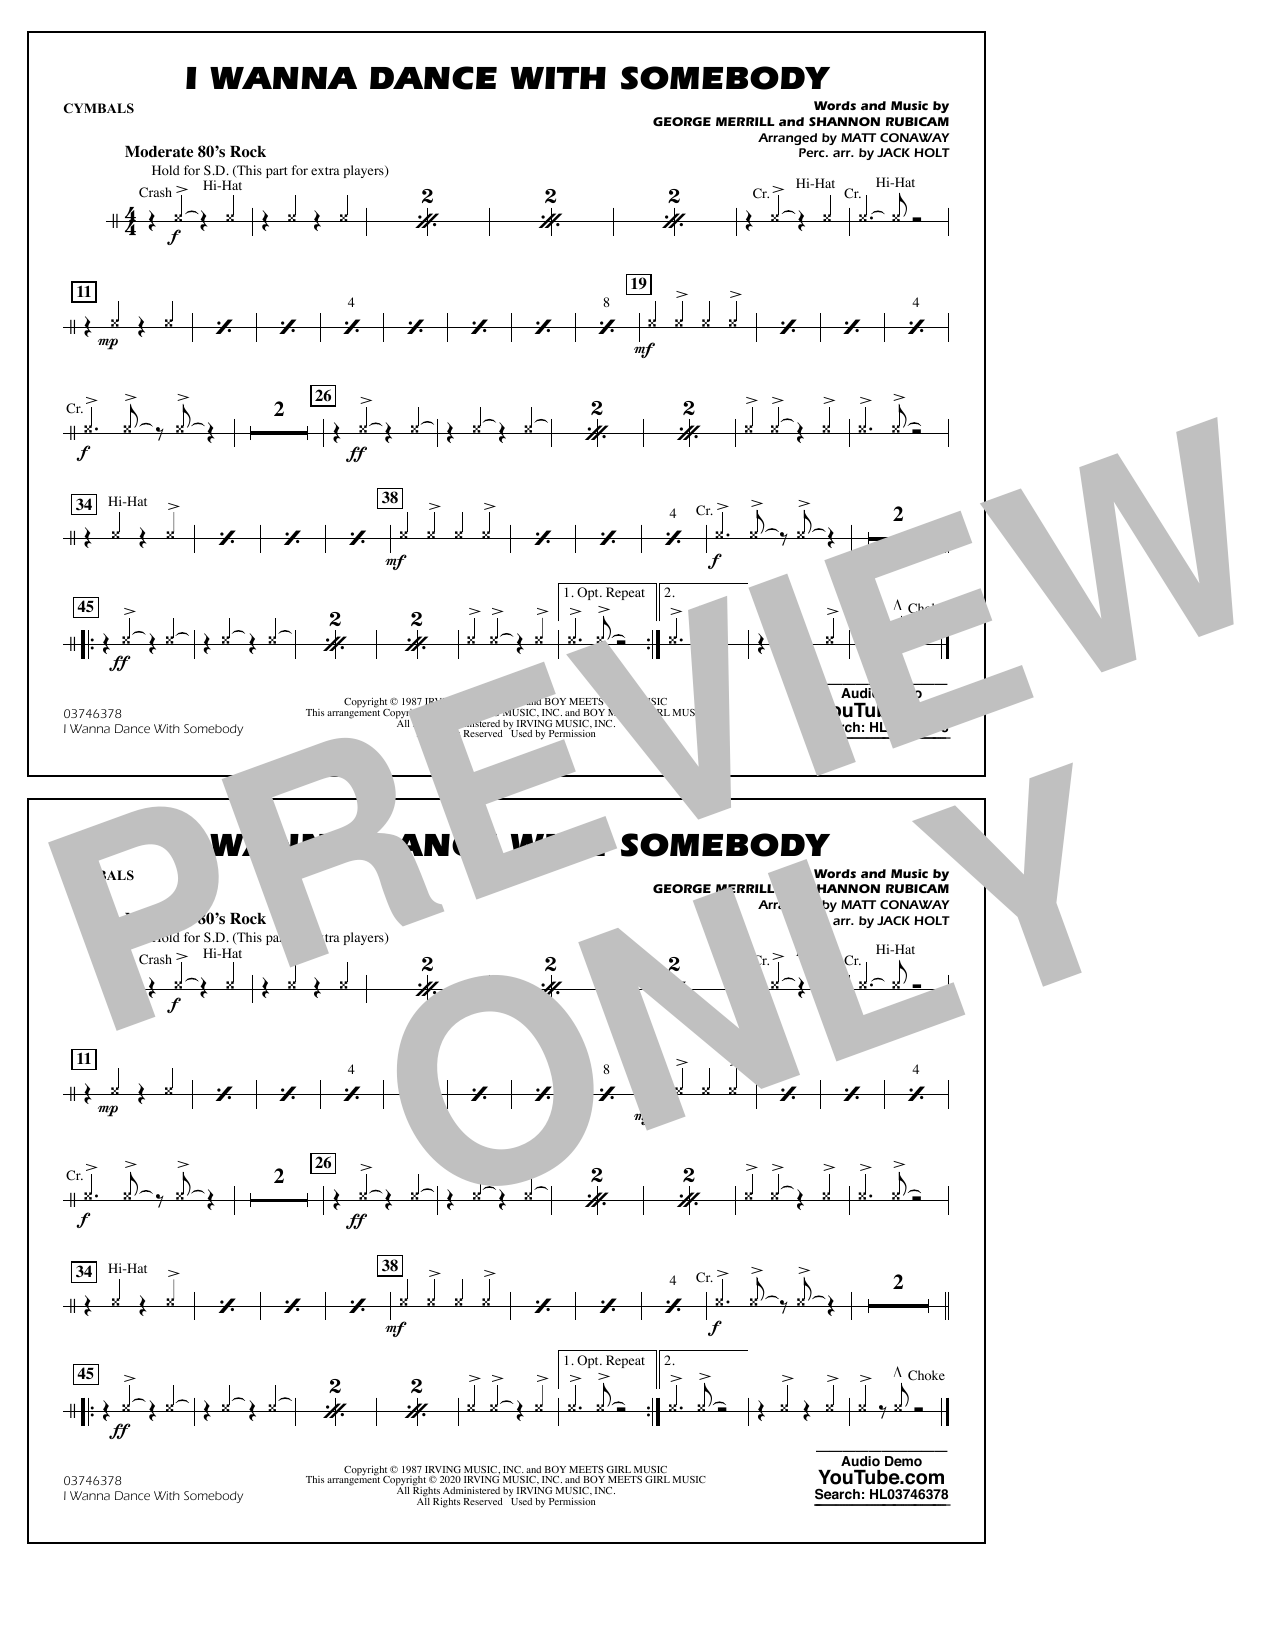 Whitney Houston I Wanna Dance with Somebody (arr. Conaway and Holt) - Cymbals sheet music notes and chords. Download Printable PDF.